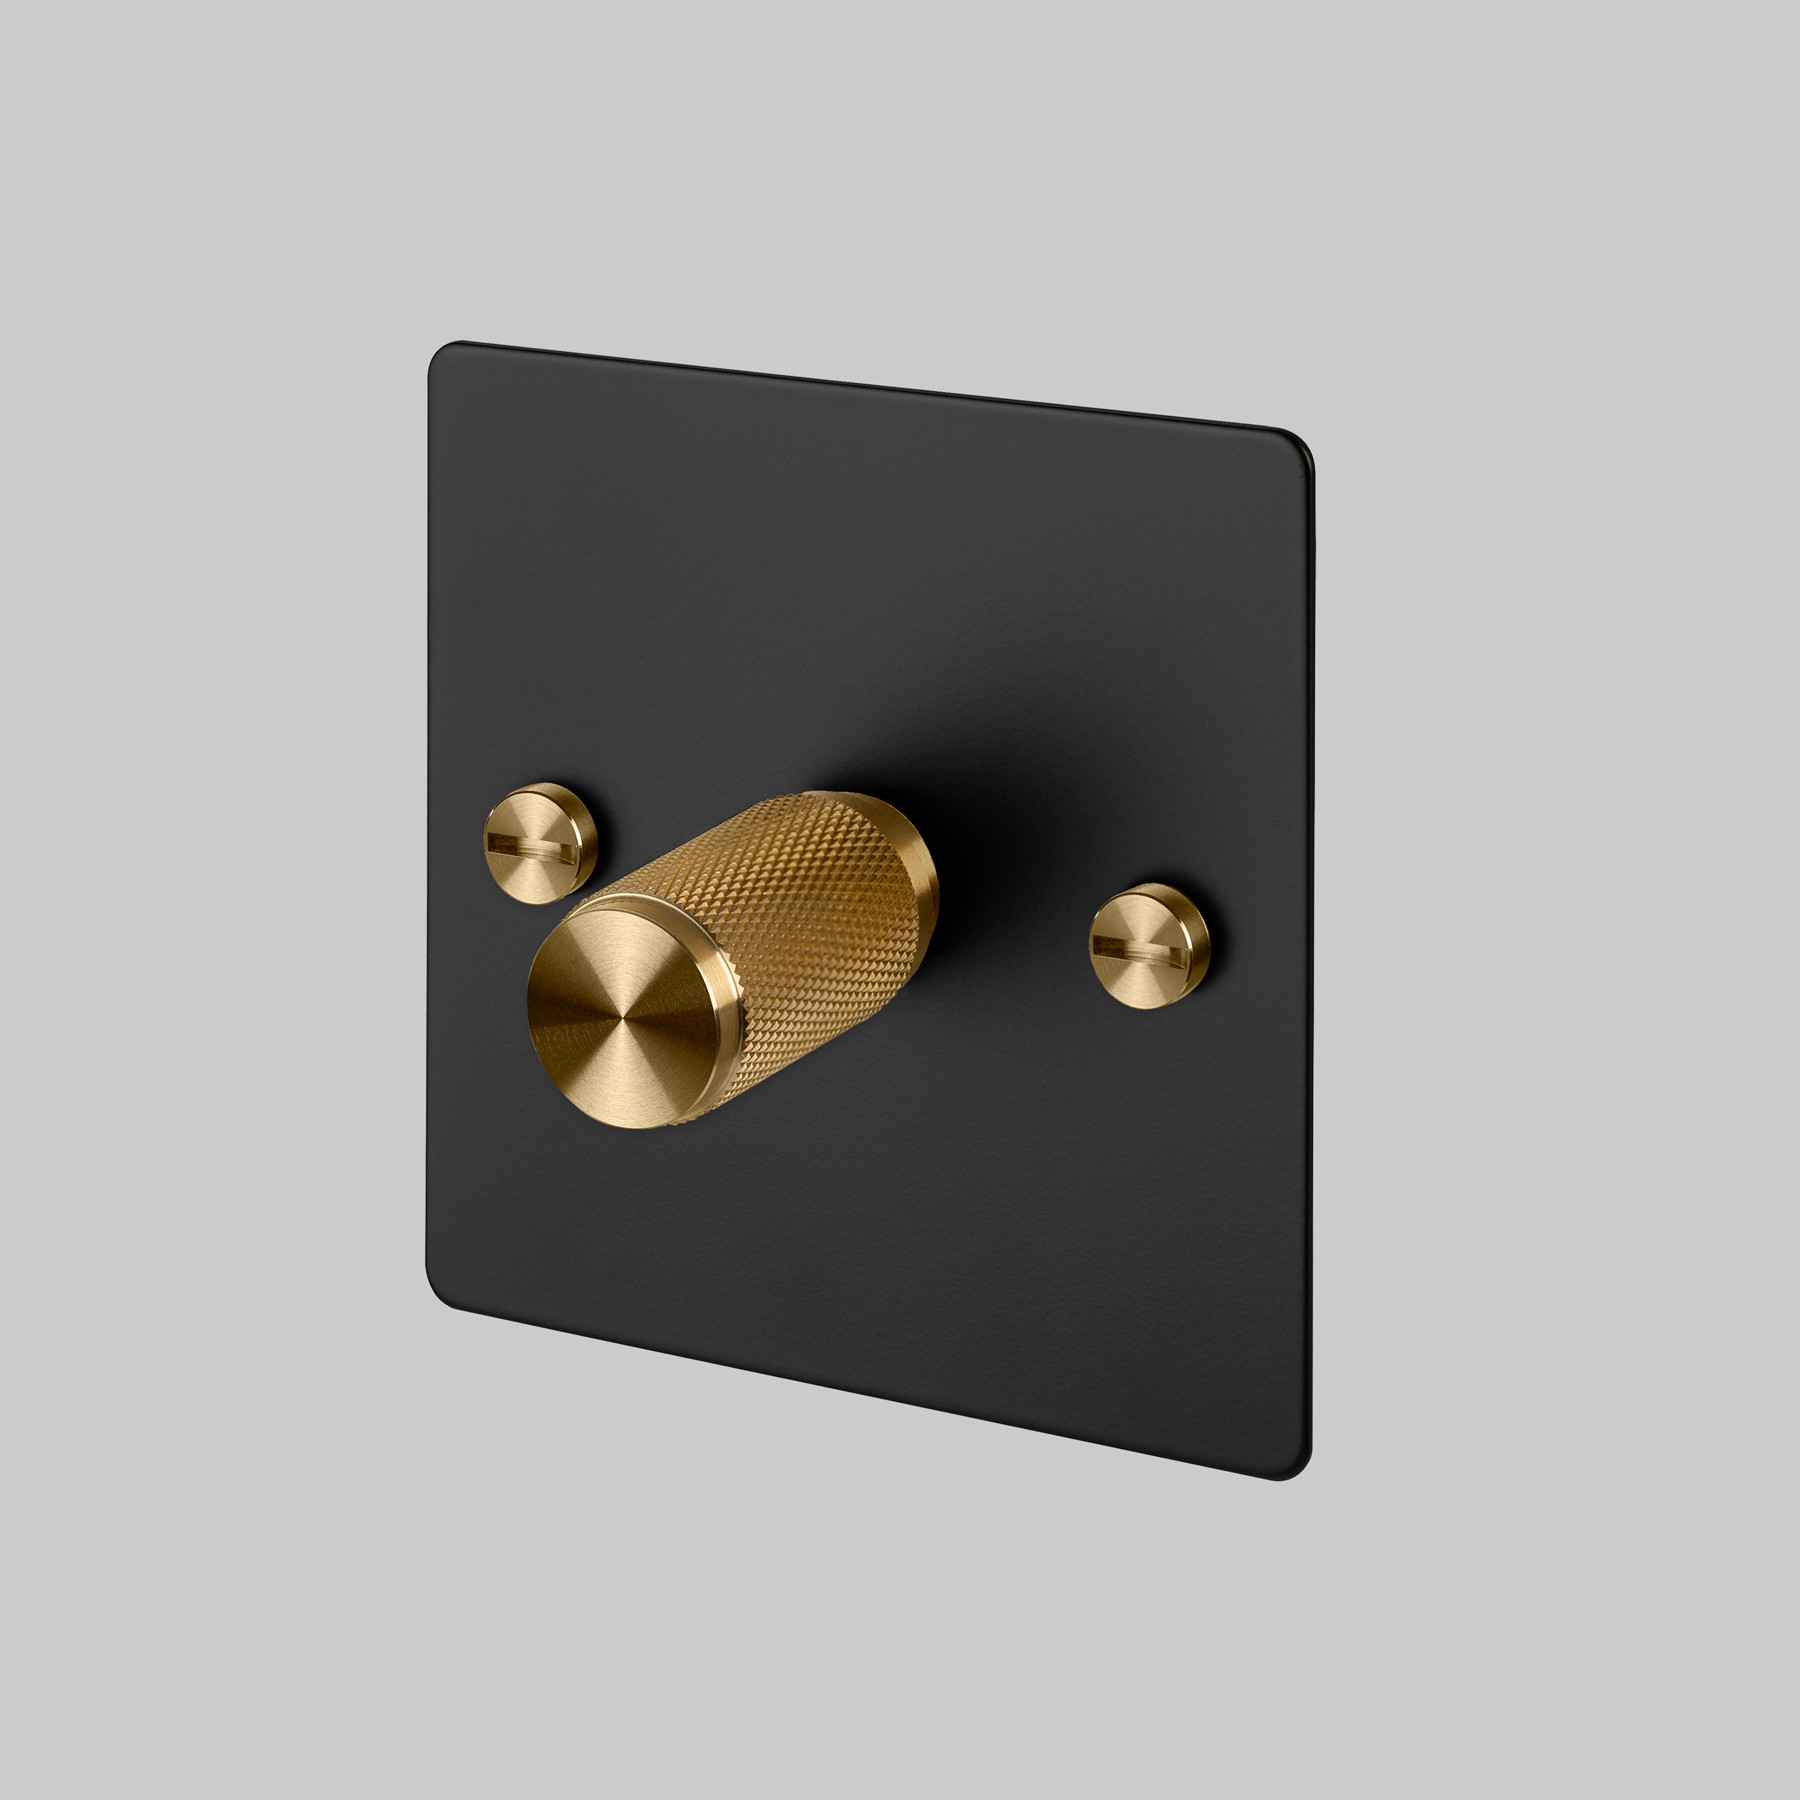 1G DIMMER / BLACK / BRASS